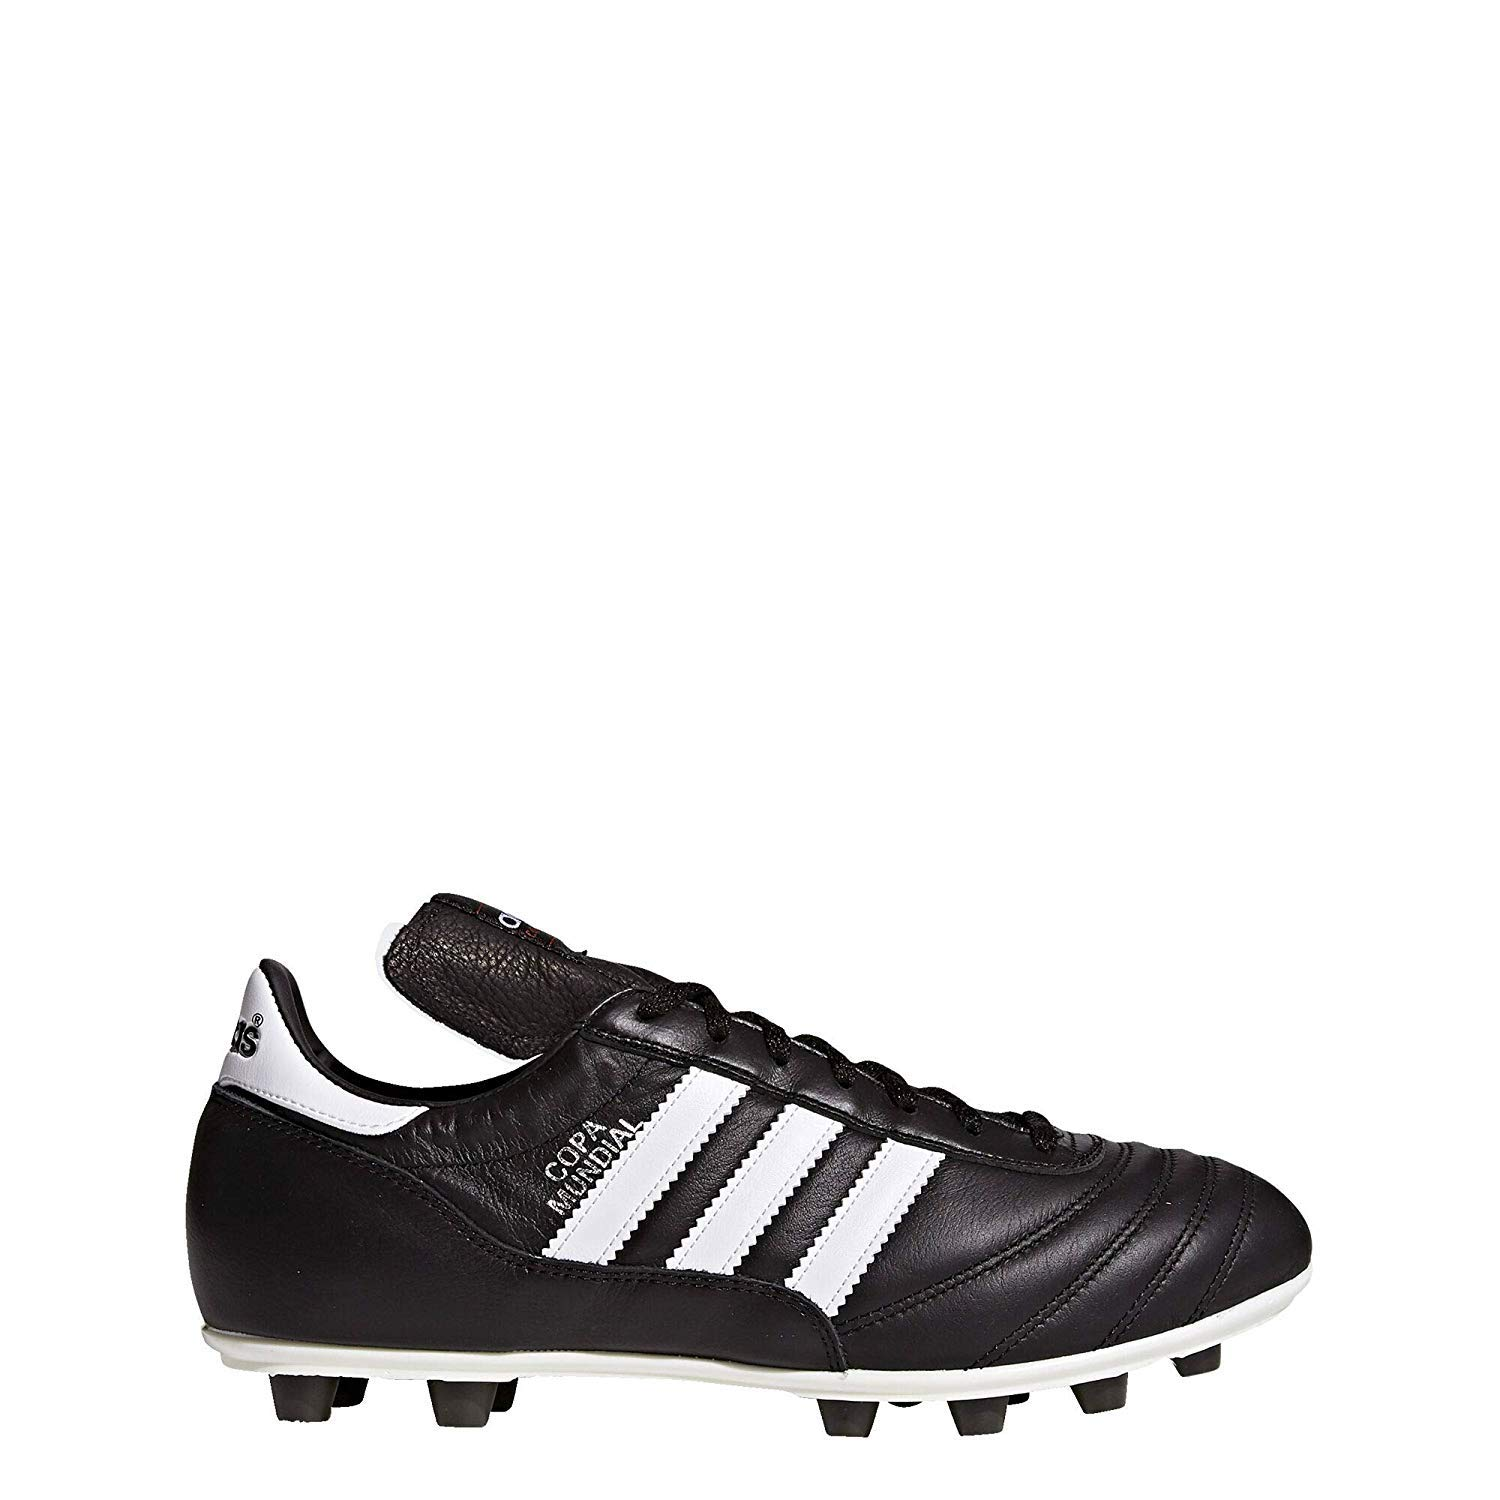 Adidas 15110 Copa Mundial Uomo Scarpe Calcio amazon shoes